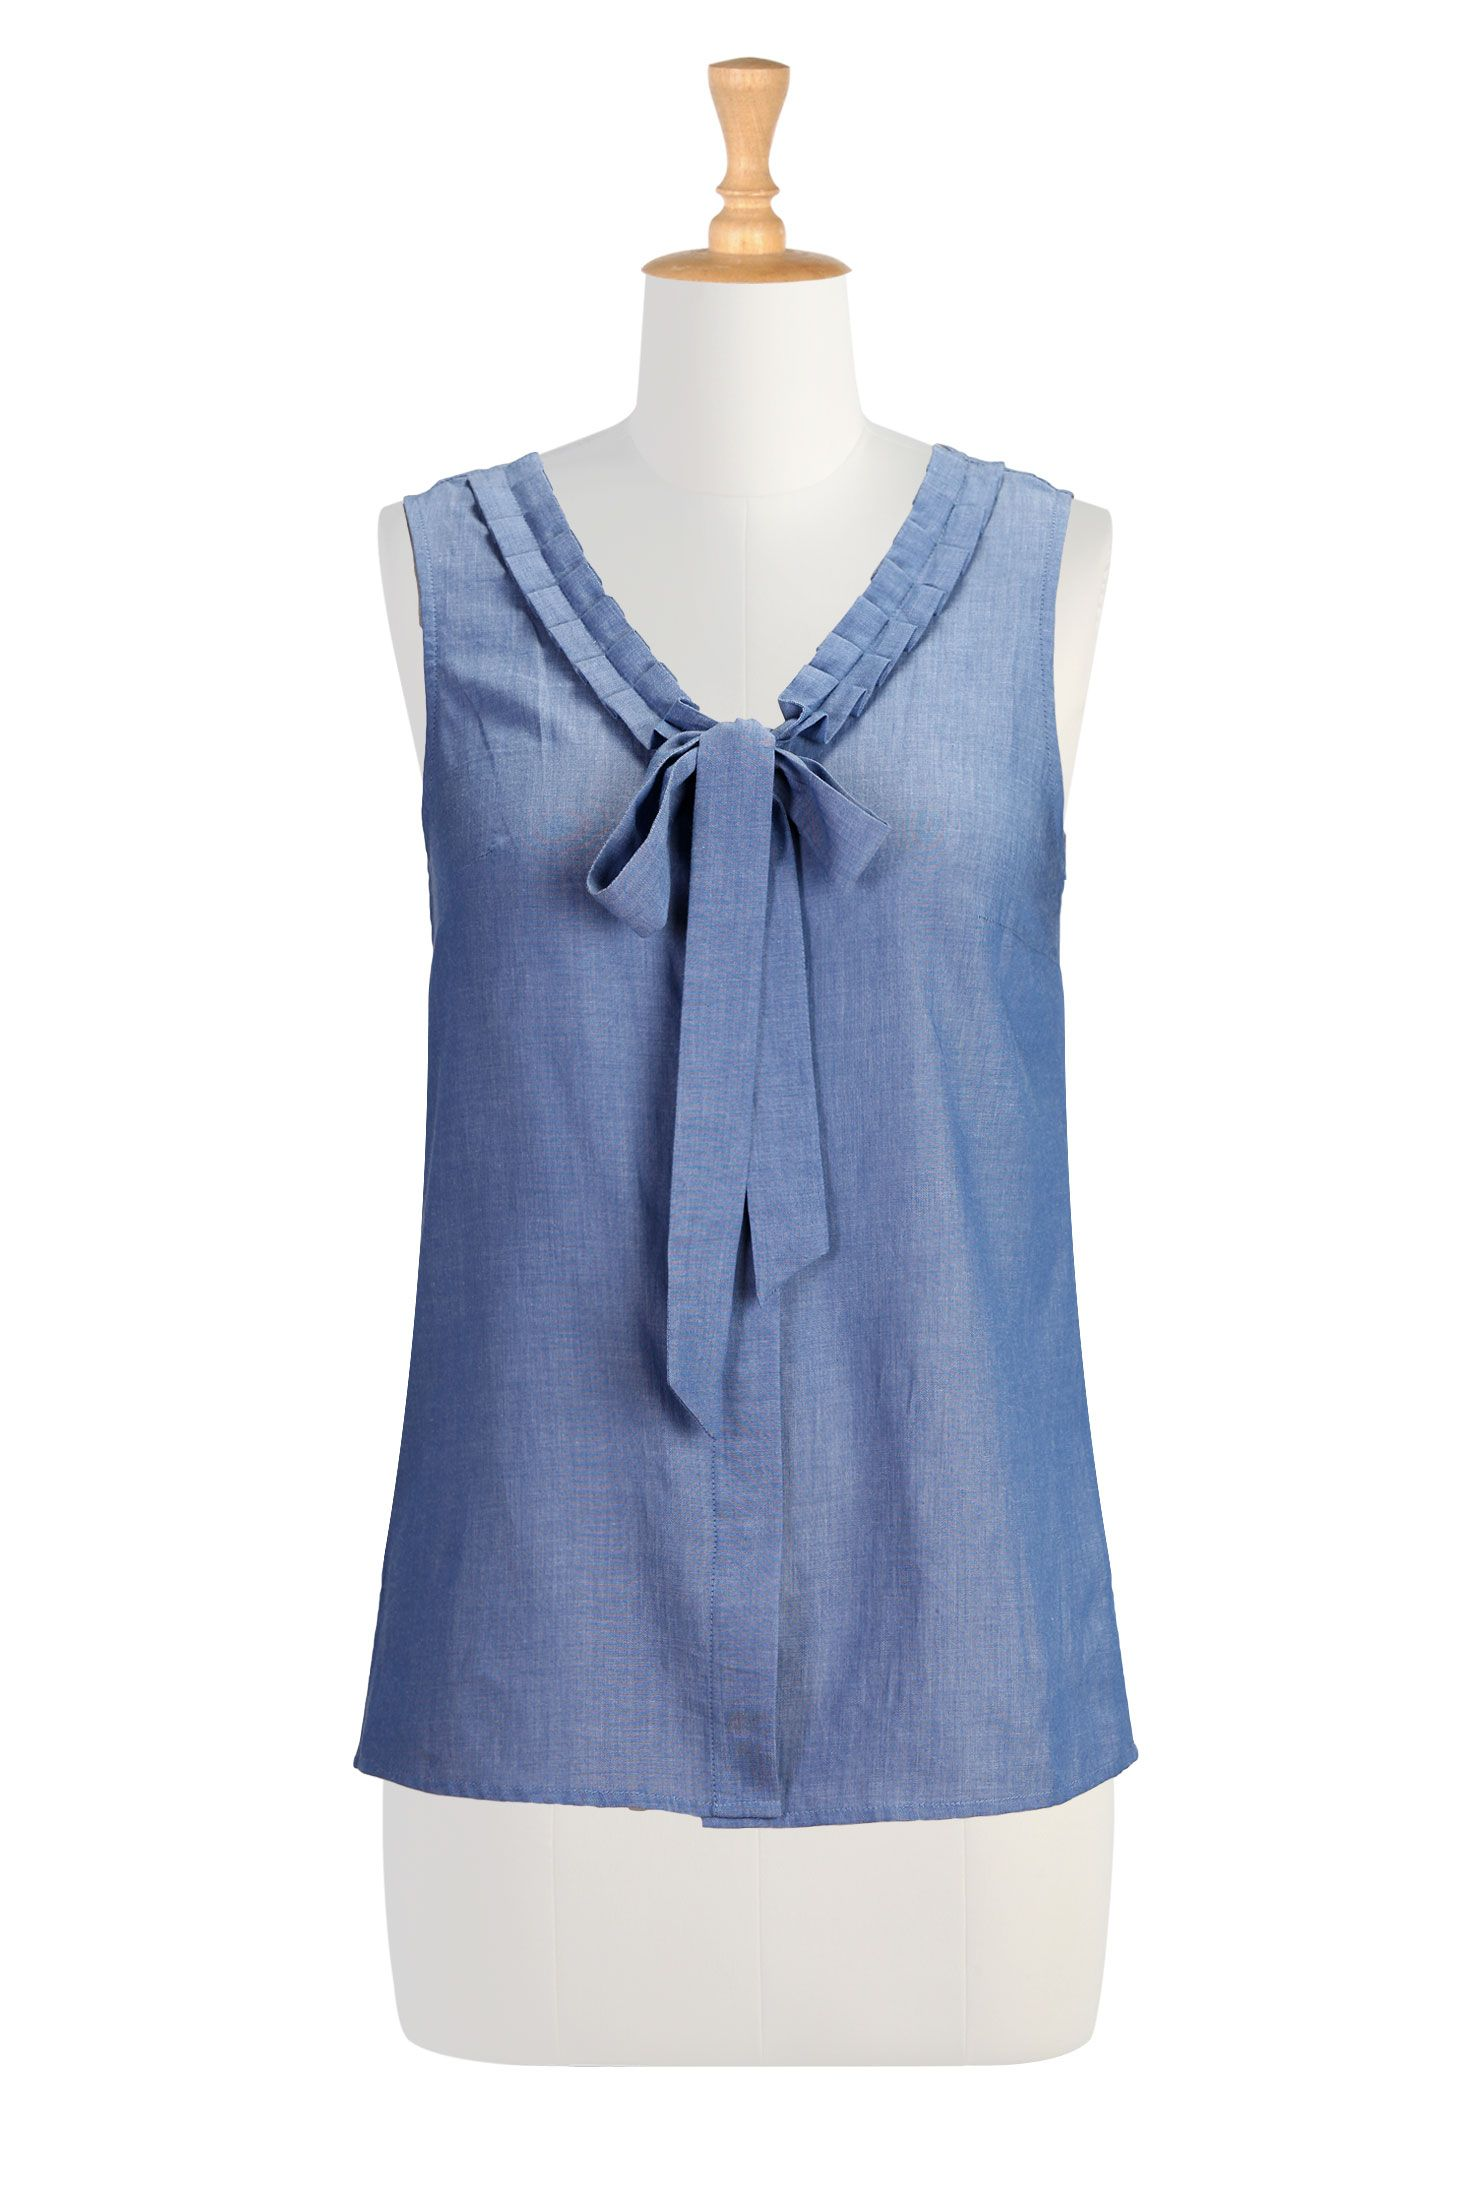 a7d729a99cc Chambray Voile Blouses, Light Cotton Plus Size Shirts Womens designer  clothing - Shop womens long sleeve tops - Tunic Tops - Shop for Women'.